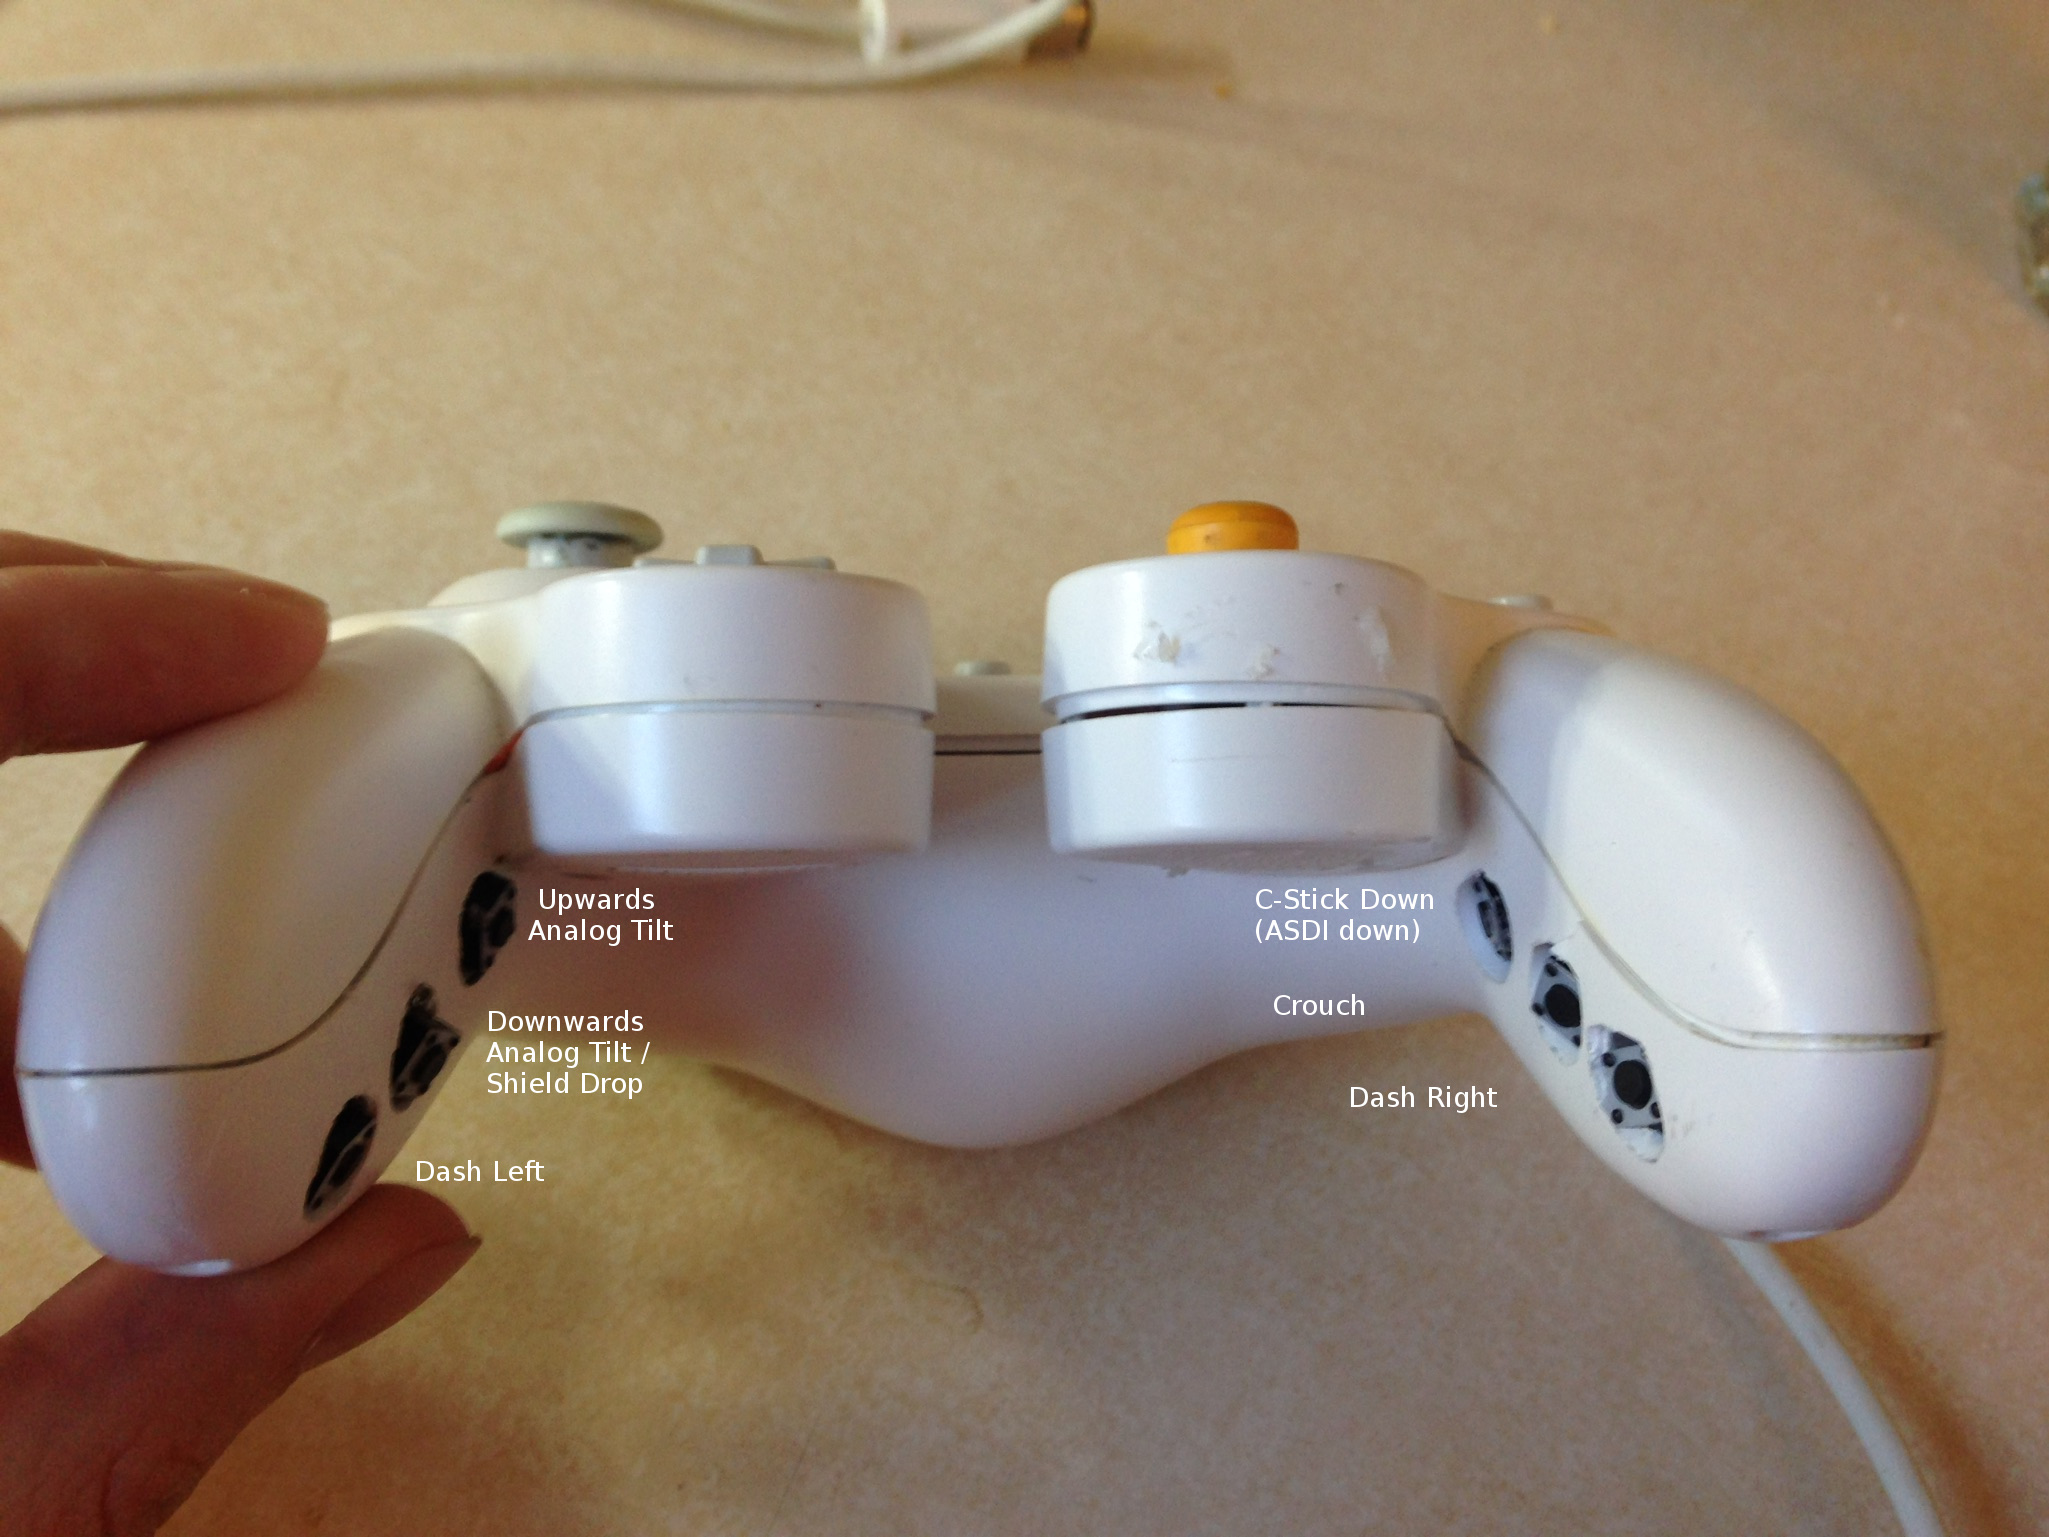 Hitbox Gamecube Controller Wiring Diagram Right Stick Results3